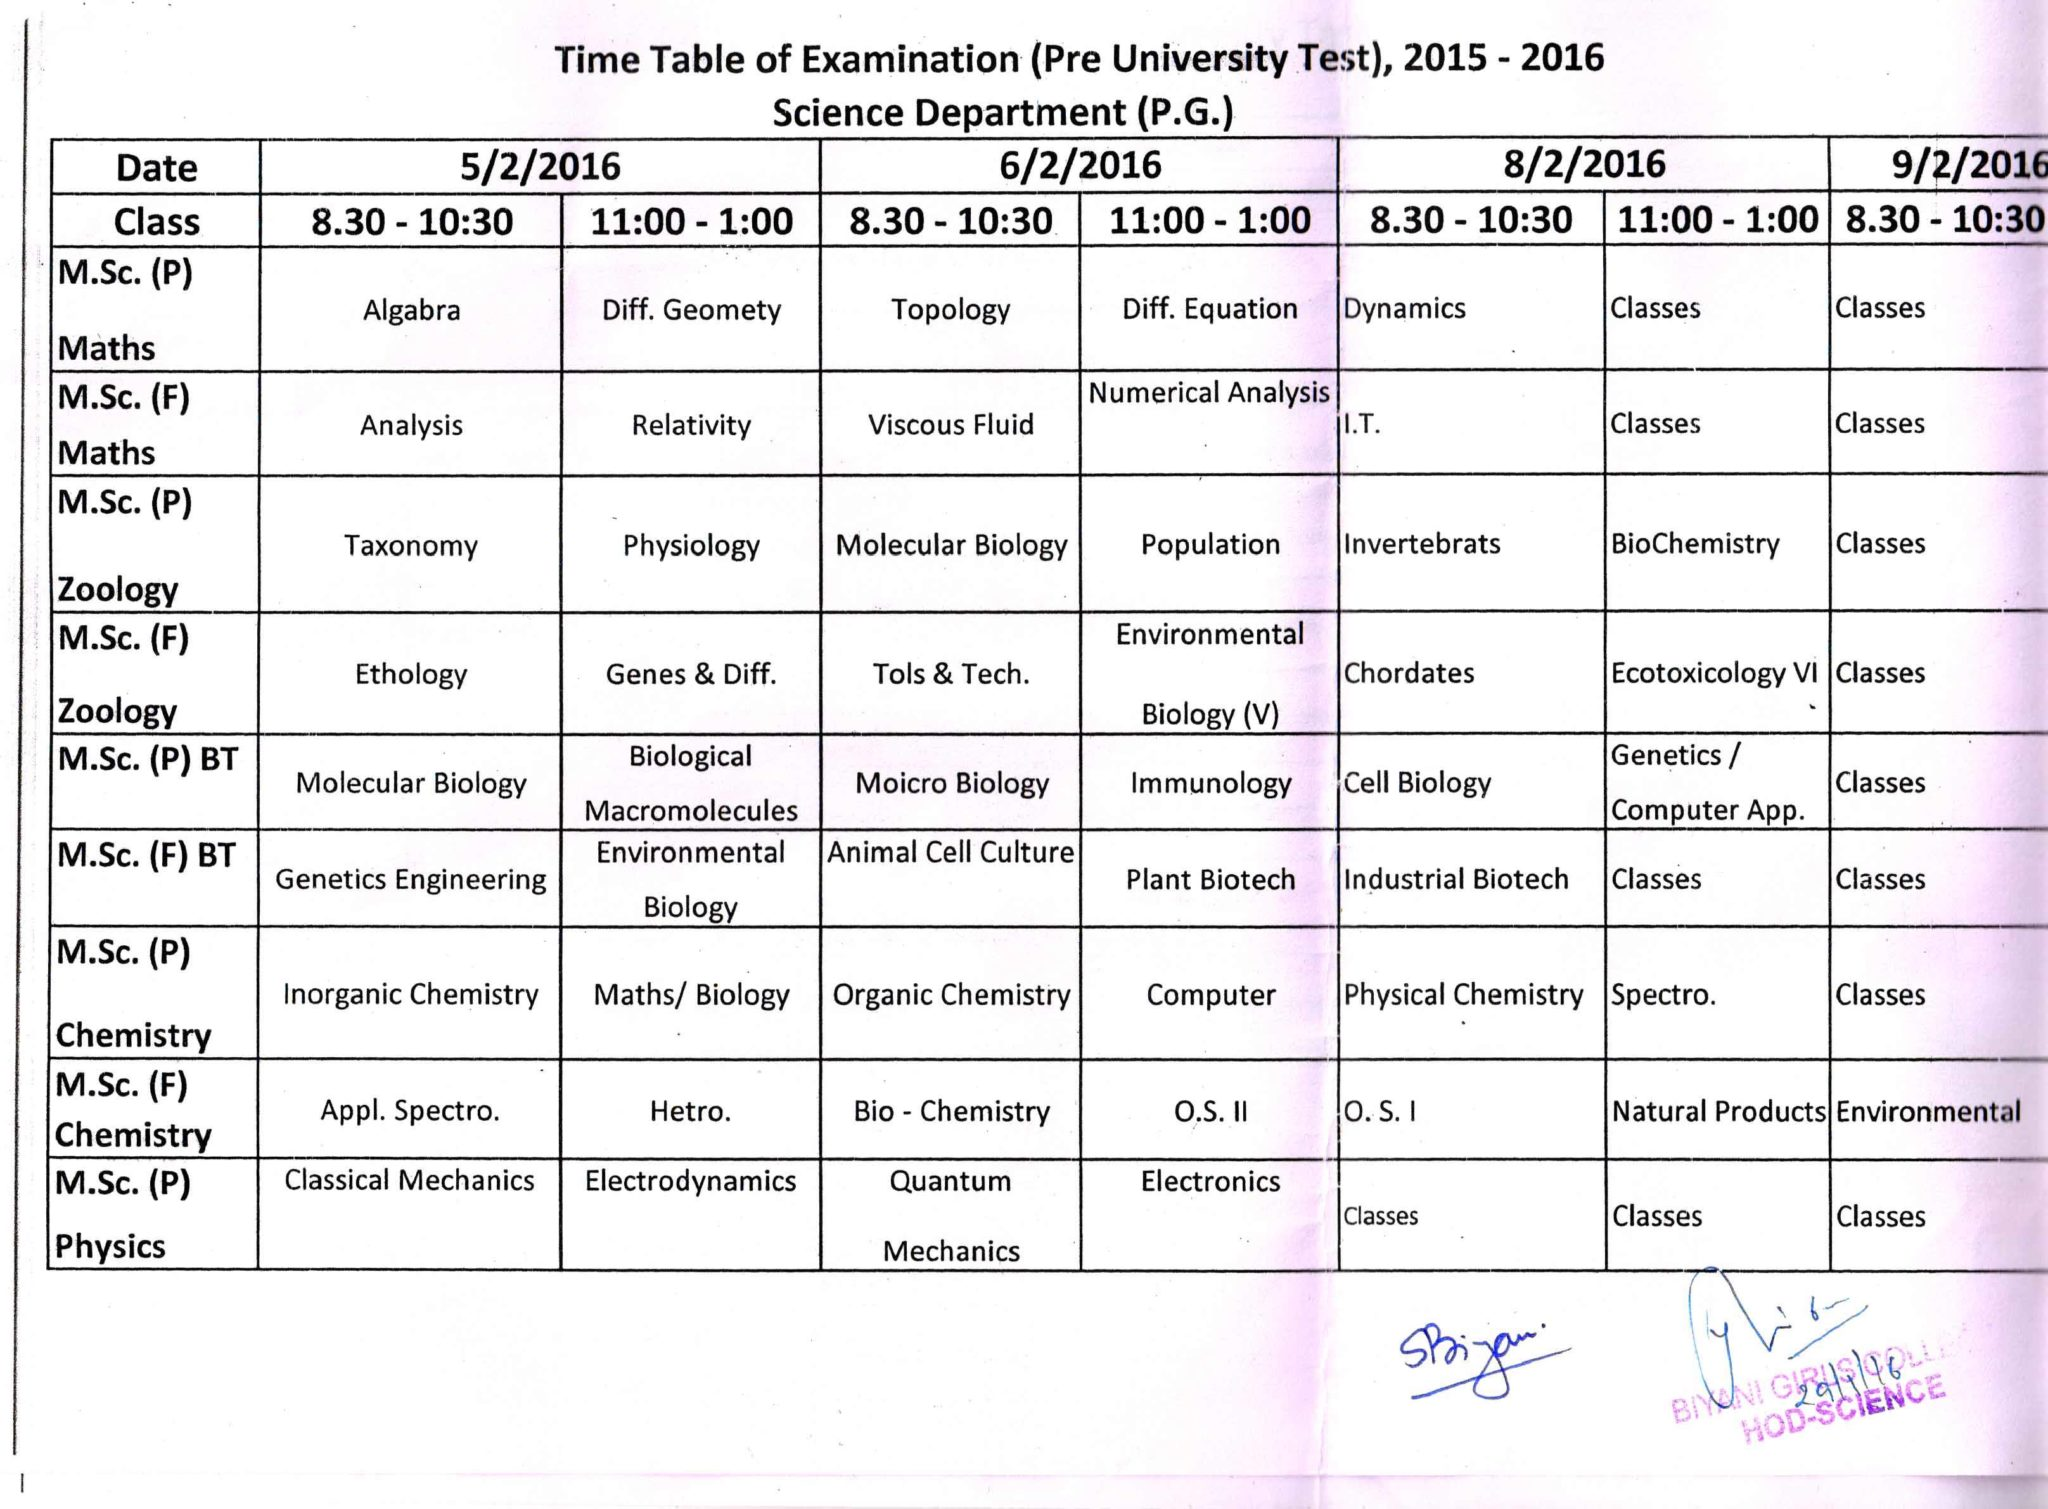 Pre University Test Time Table Science Department UG PG courses